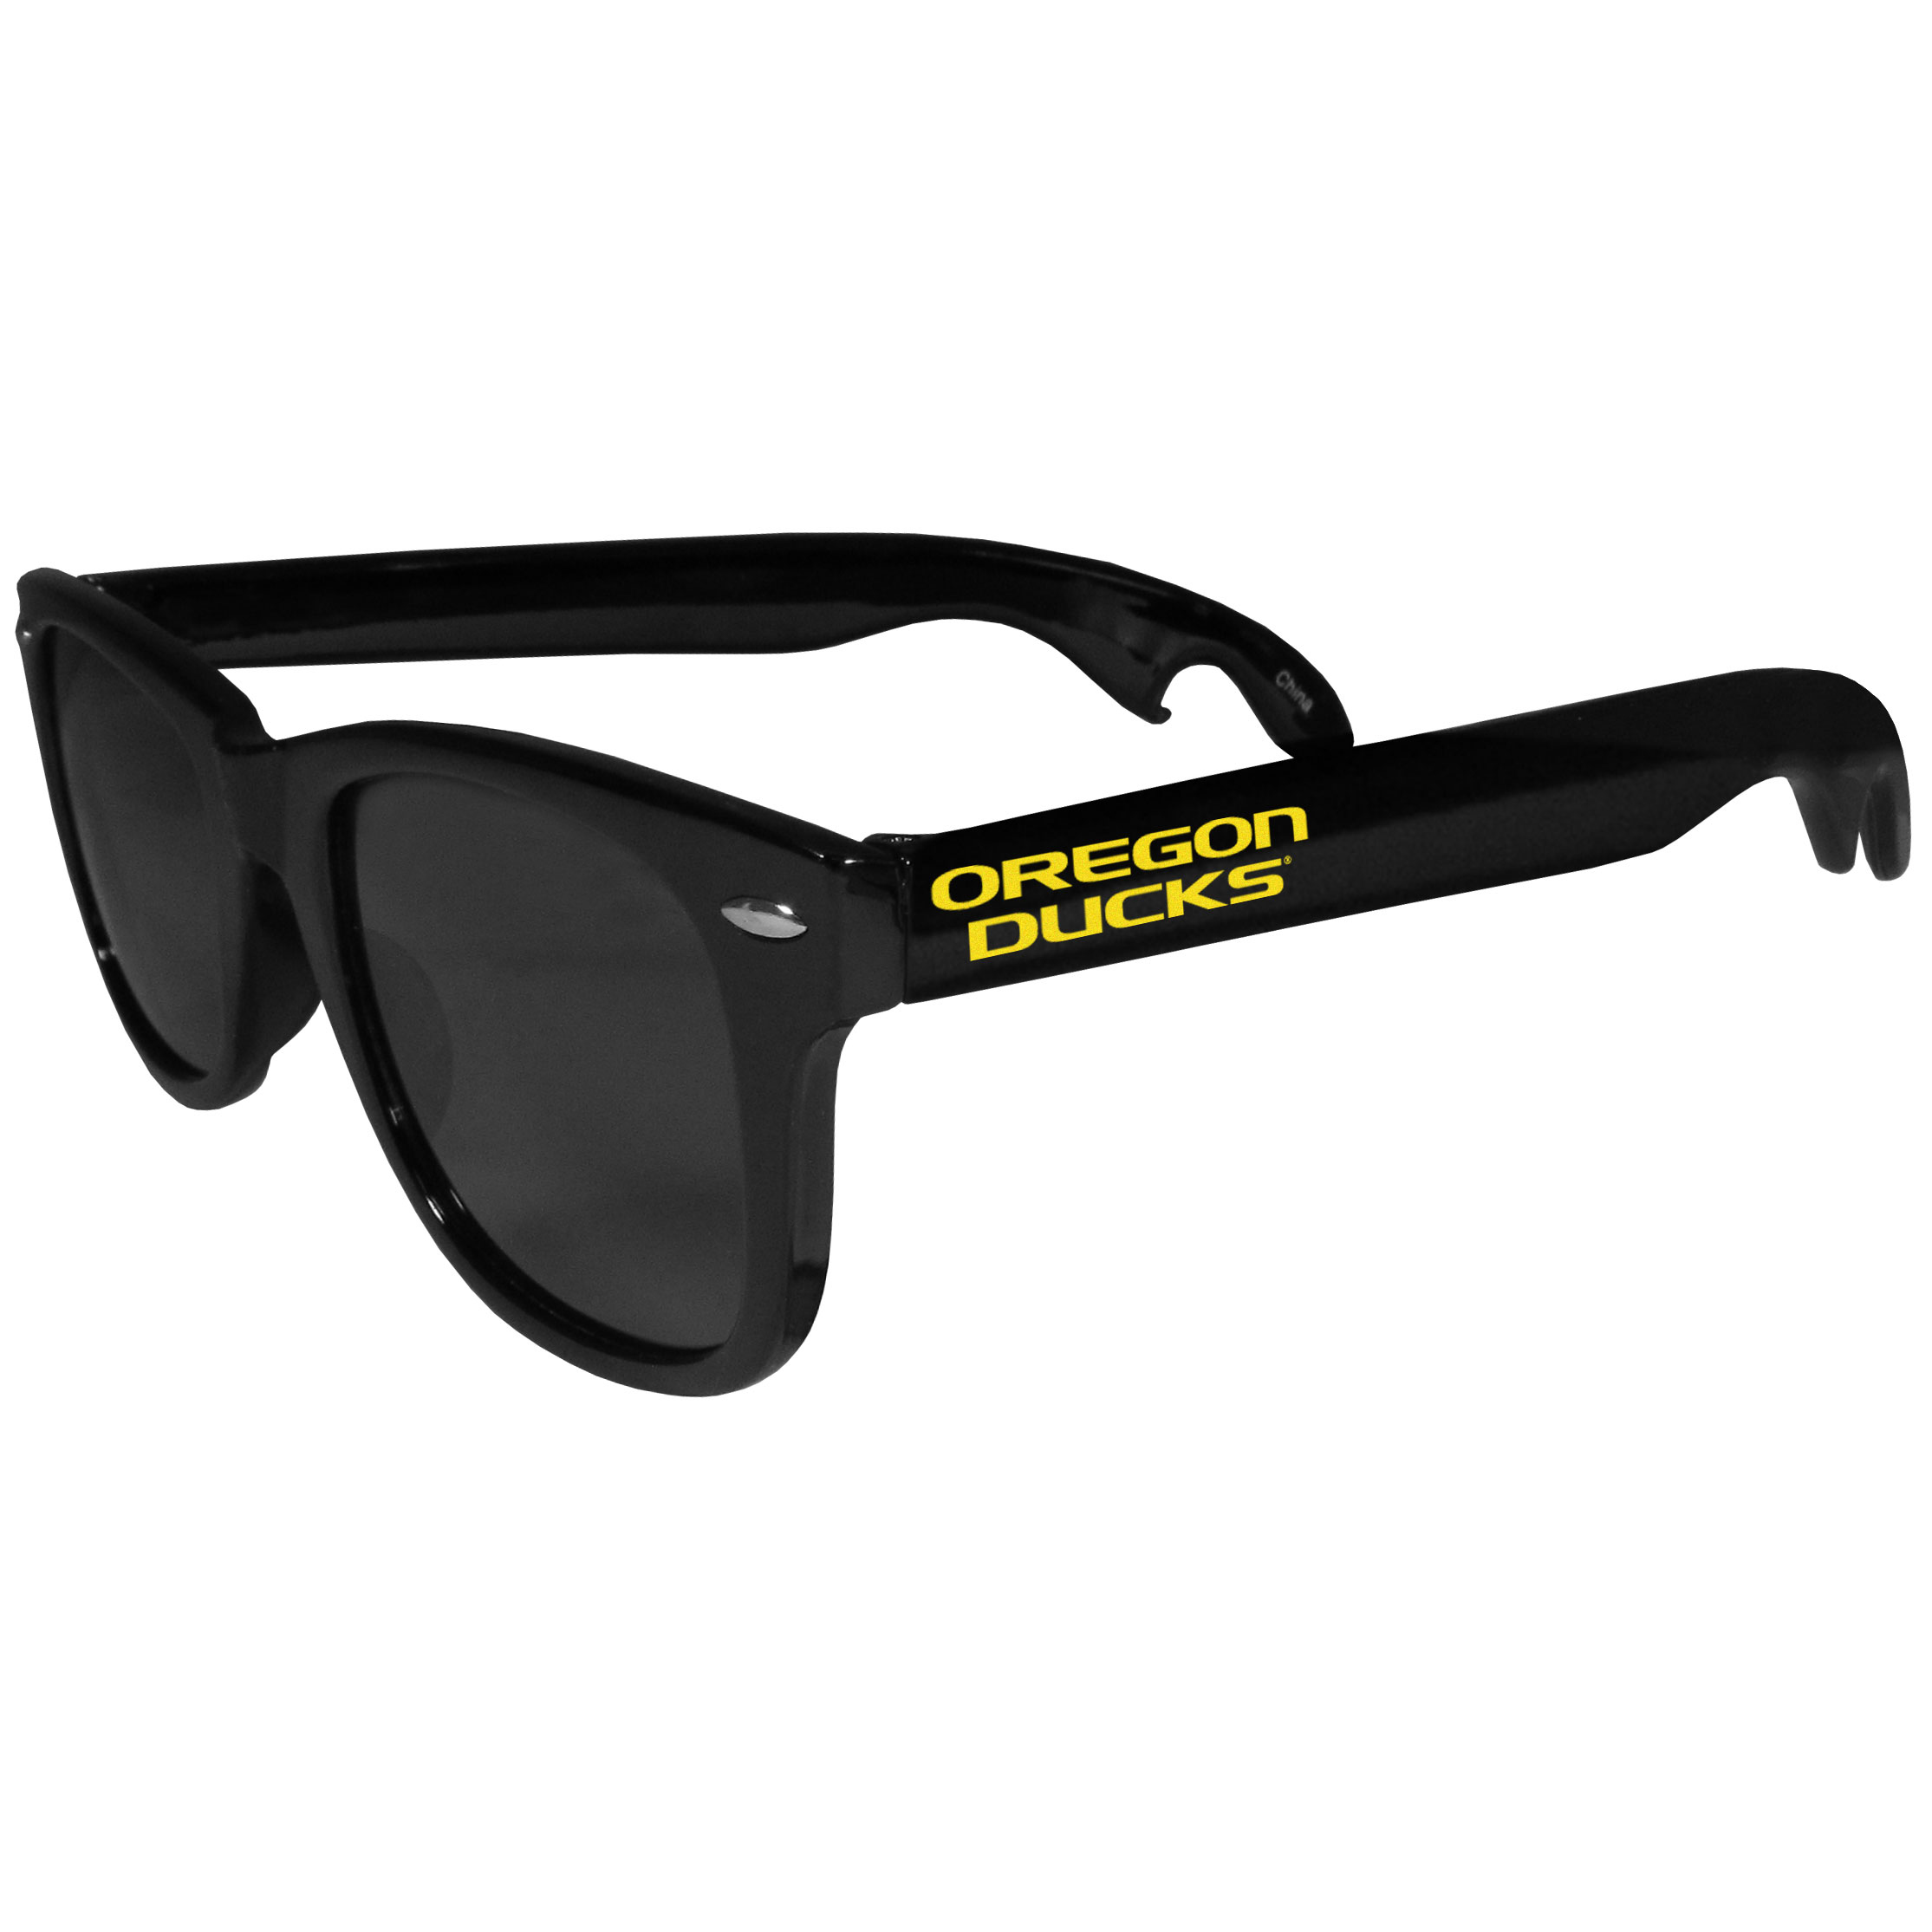 Oregon Ducks Beachfarer Bottle Opener Sunglasses - Seriously, these sunglasses open bottles! Keep the party going with these amazing Oregon Ducks bottle opener sunglasses. The stylish retro frames feature team designs on the arms and functional bottle openers on the end of the arms. Whether you are at the beach or having a backyard BBQ on game day, these shades will keep your eyes protected with 100% UVA/UVB protection and keep you hydrated with the handy bottle opener arms.